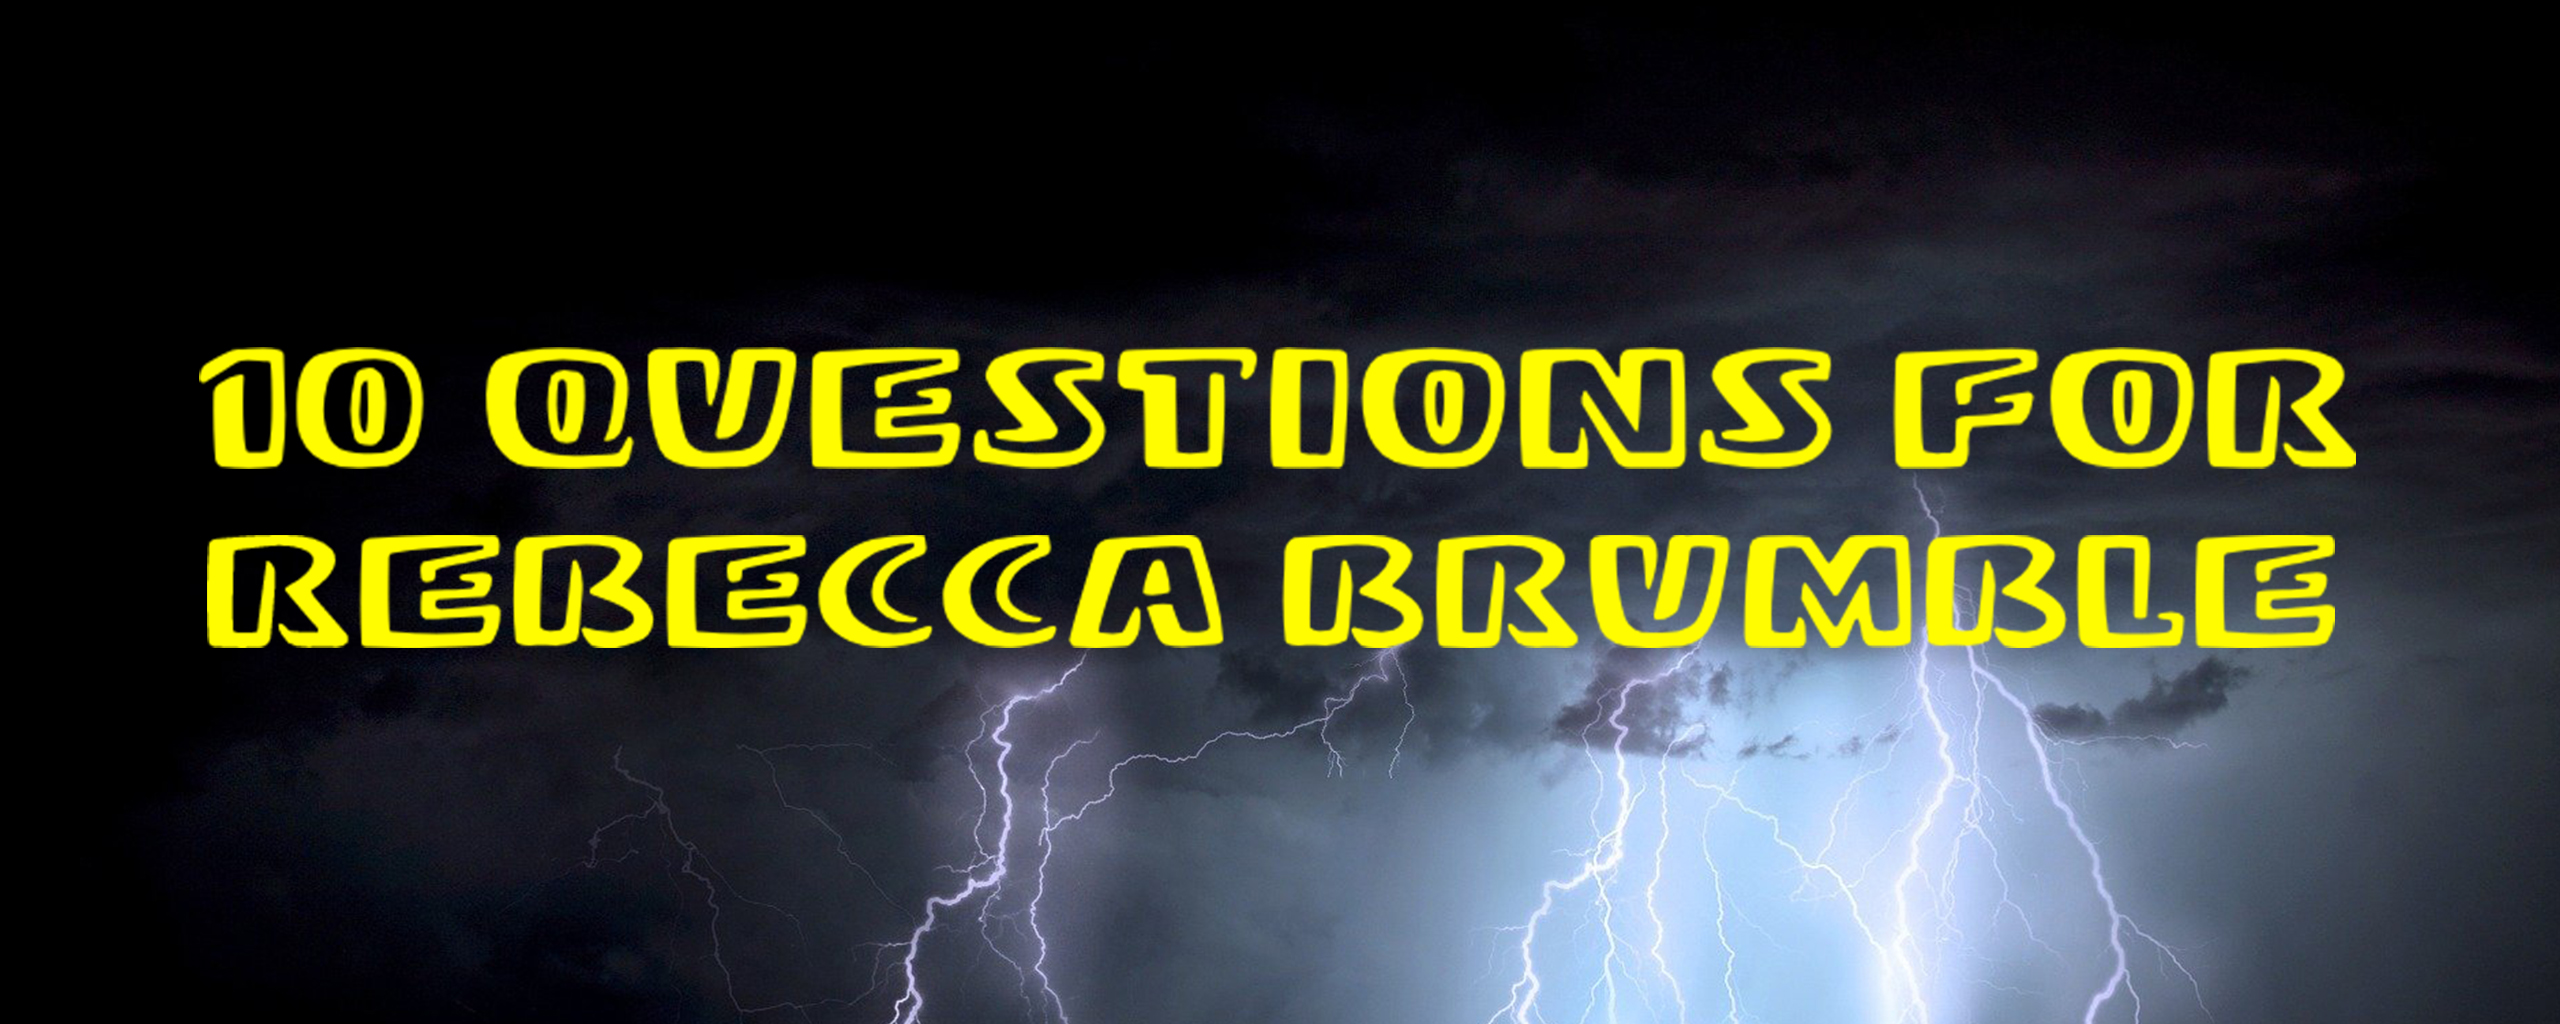 10 Questions for Rebecca Brumble